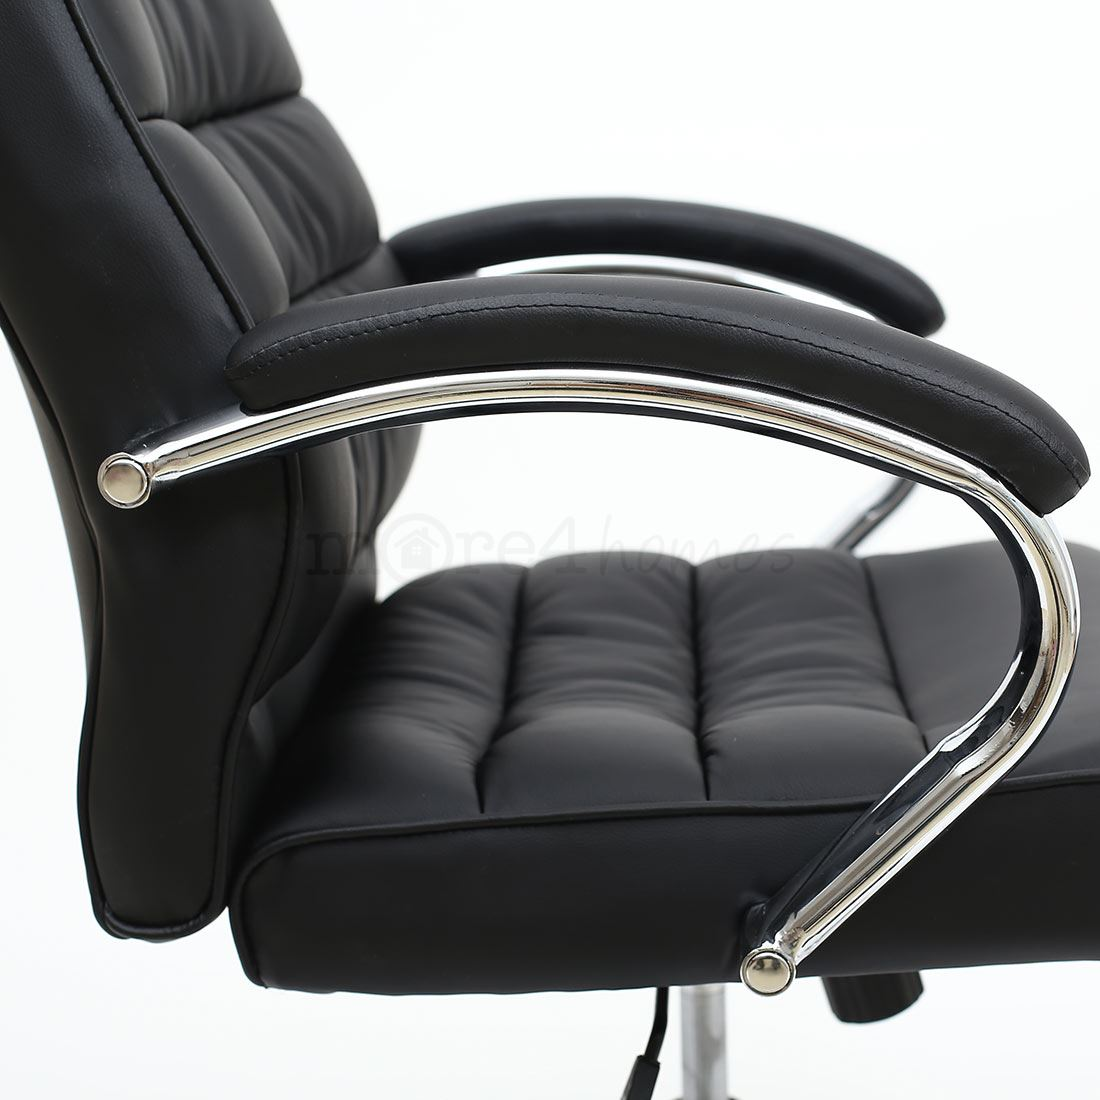 posture chair ebay aeron herman miller manual mexico premium high back executive leather office